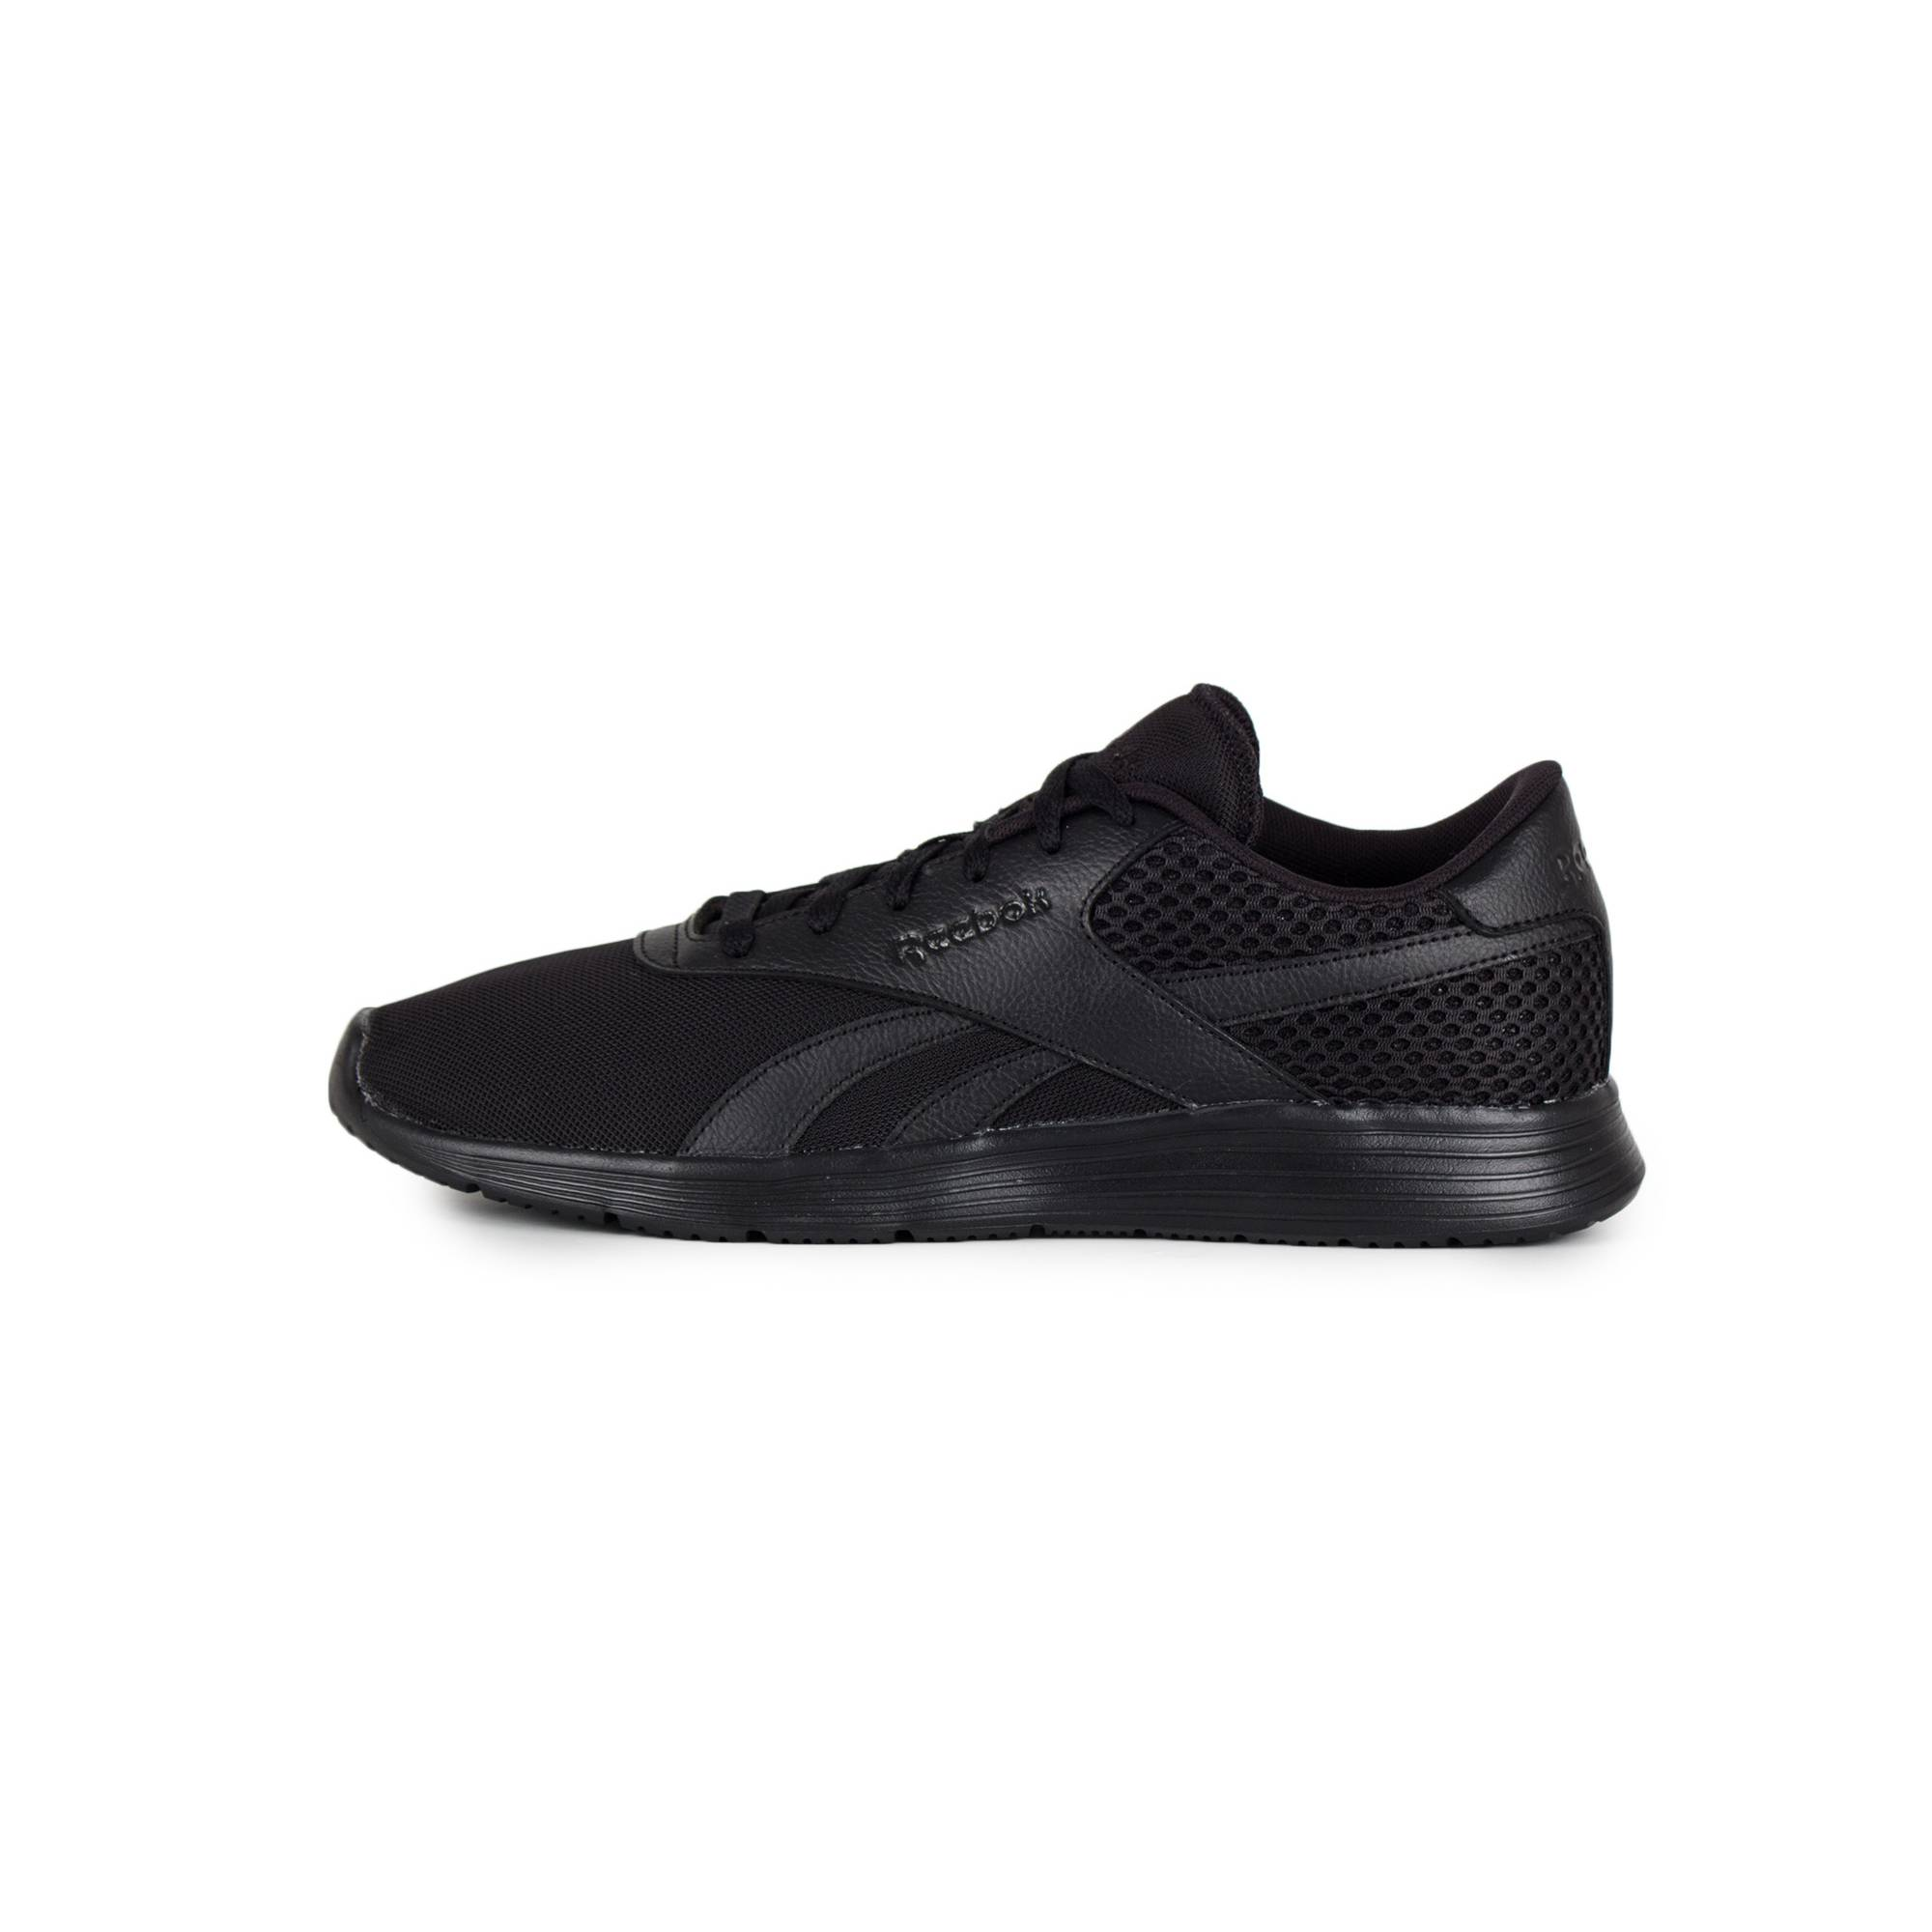 Reebok Classic - Royal EC Ride FS Men's Black Shoes